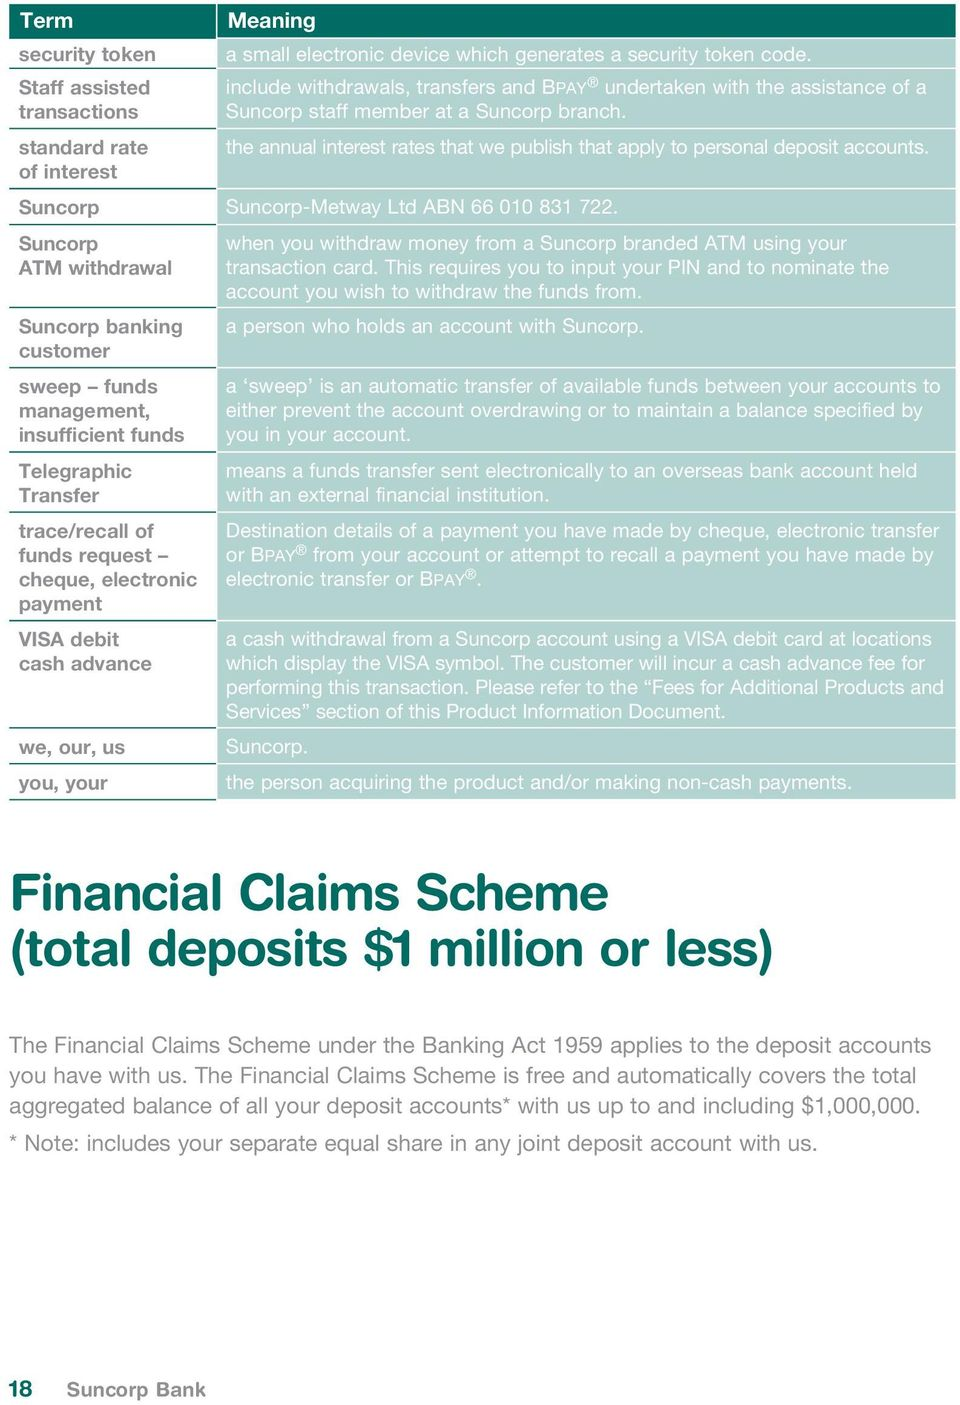 Emirates money loan against deposit photo 5